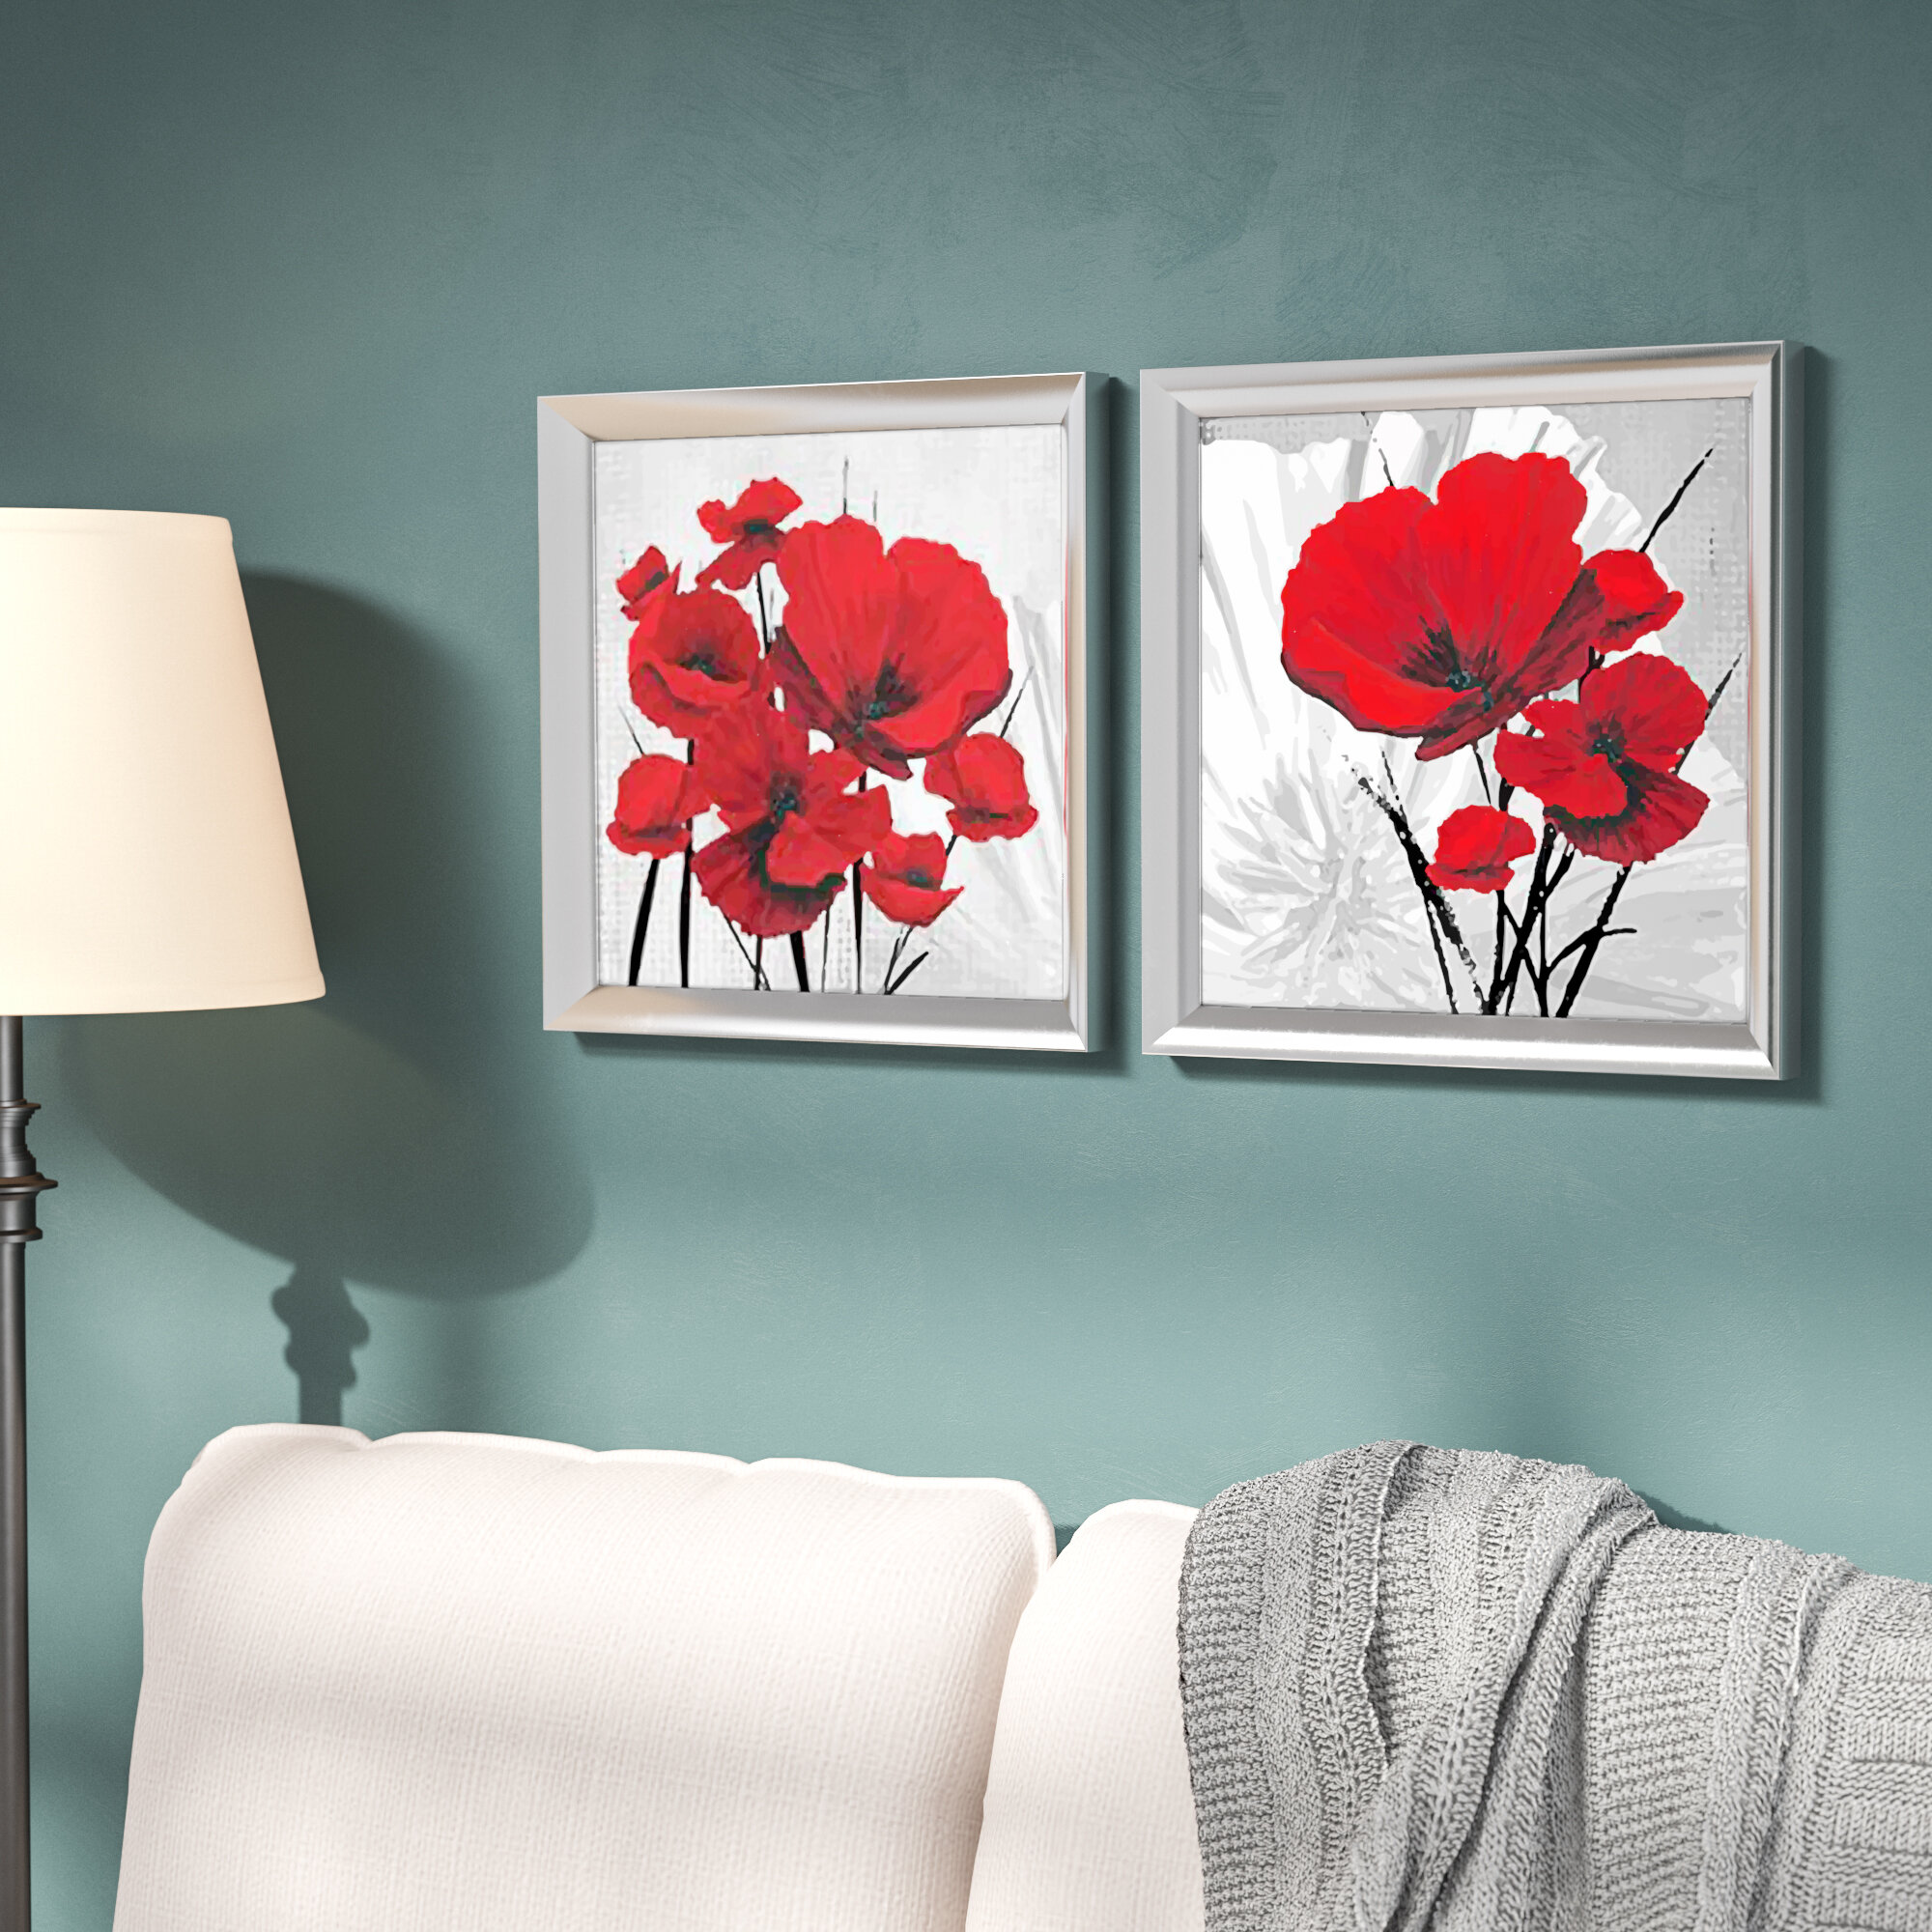 WATERCOLOR RED POPPY POPPIES WALL ART LARGE A1 POSTER 33 X 23 INCH